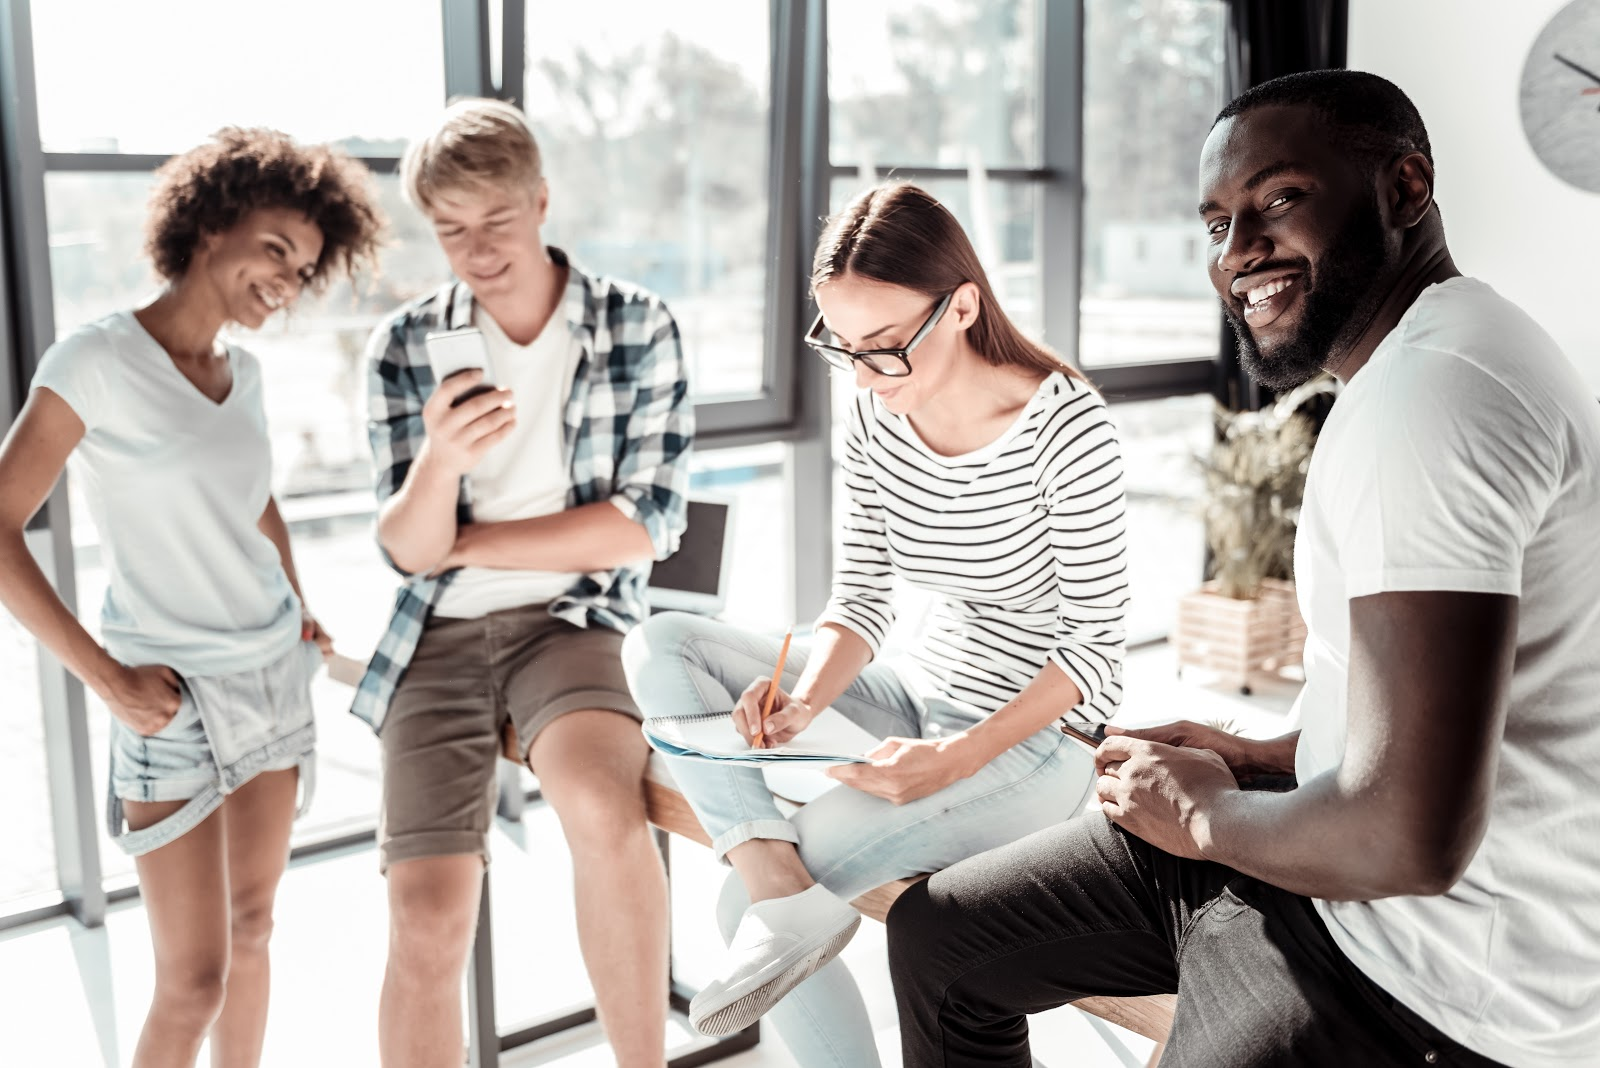 Cost of hiring an employee: Group talking and laughing together